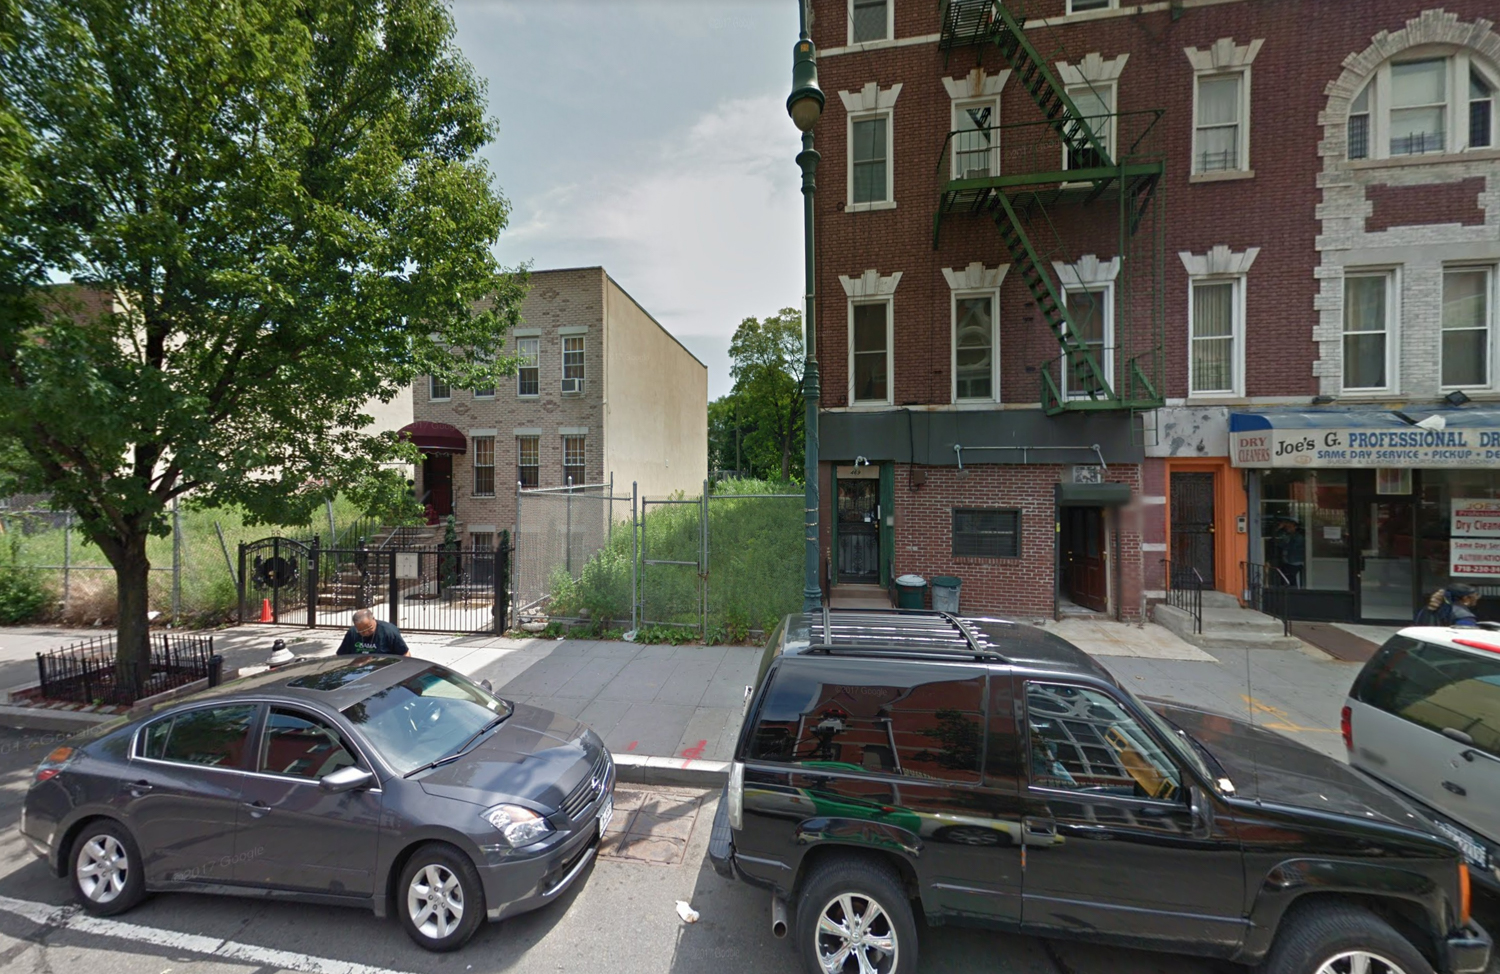 467 Tompkins Avenue, via Google Maps